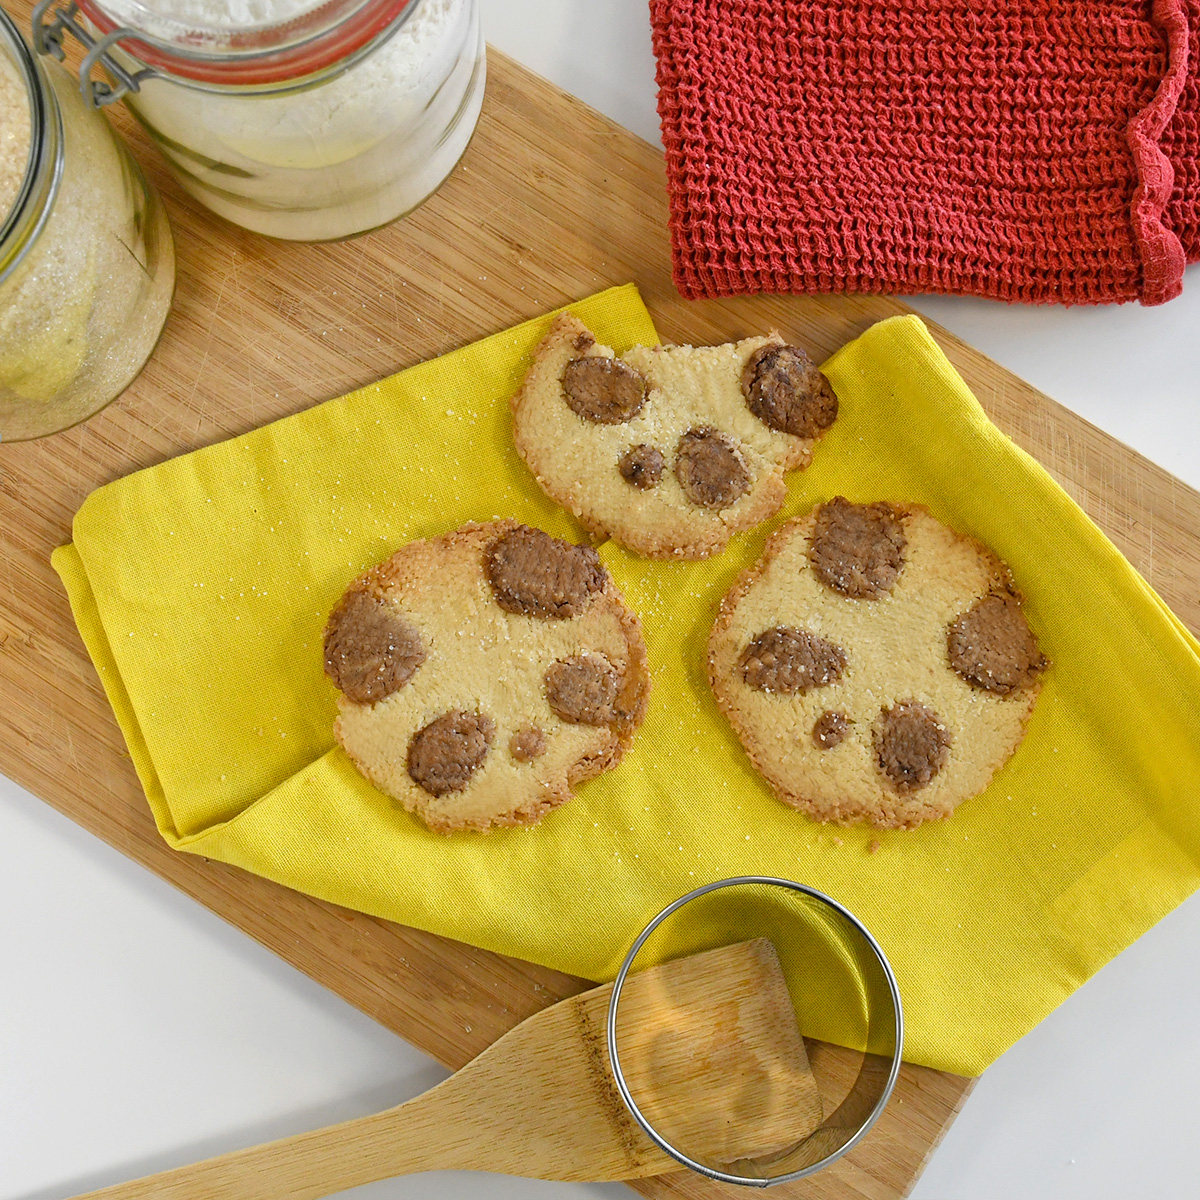 Adorable panda shortbread biscuits to snack on that are fun and original! Find all of our recipes on the blog.